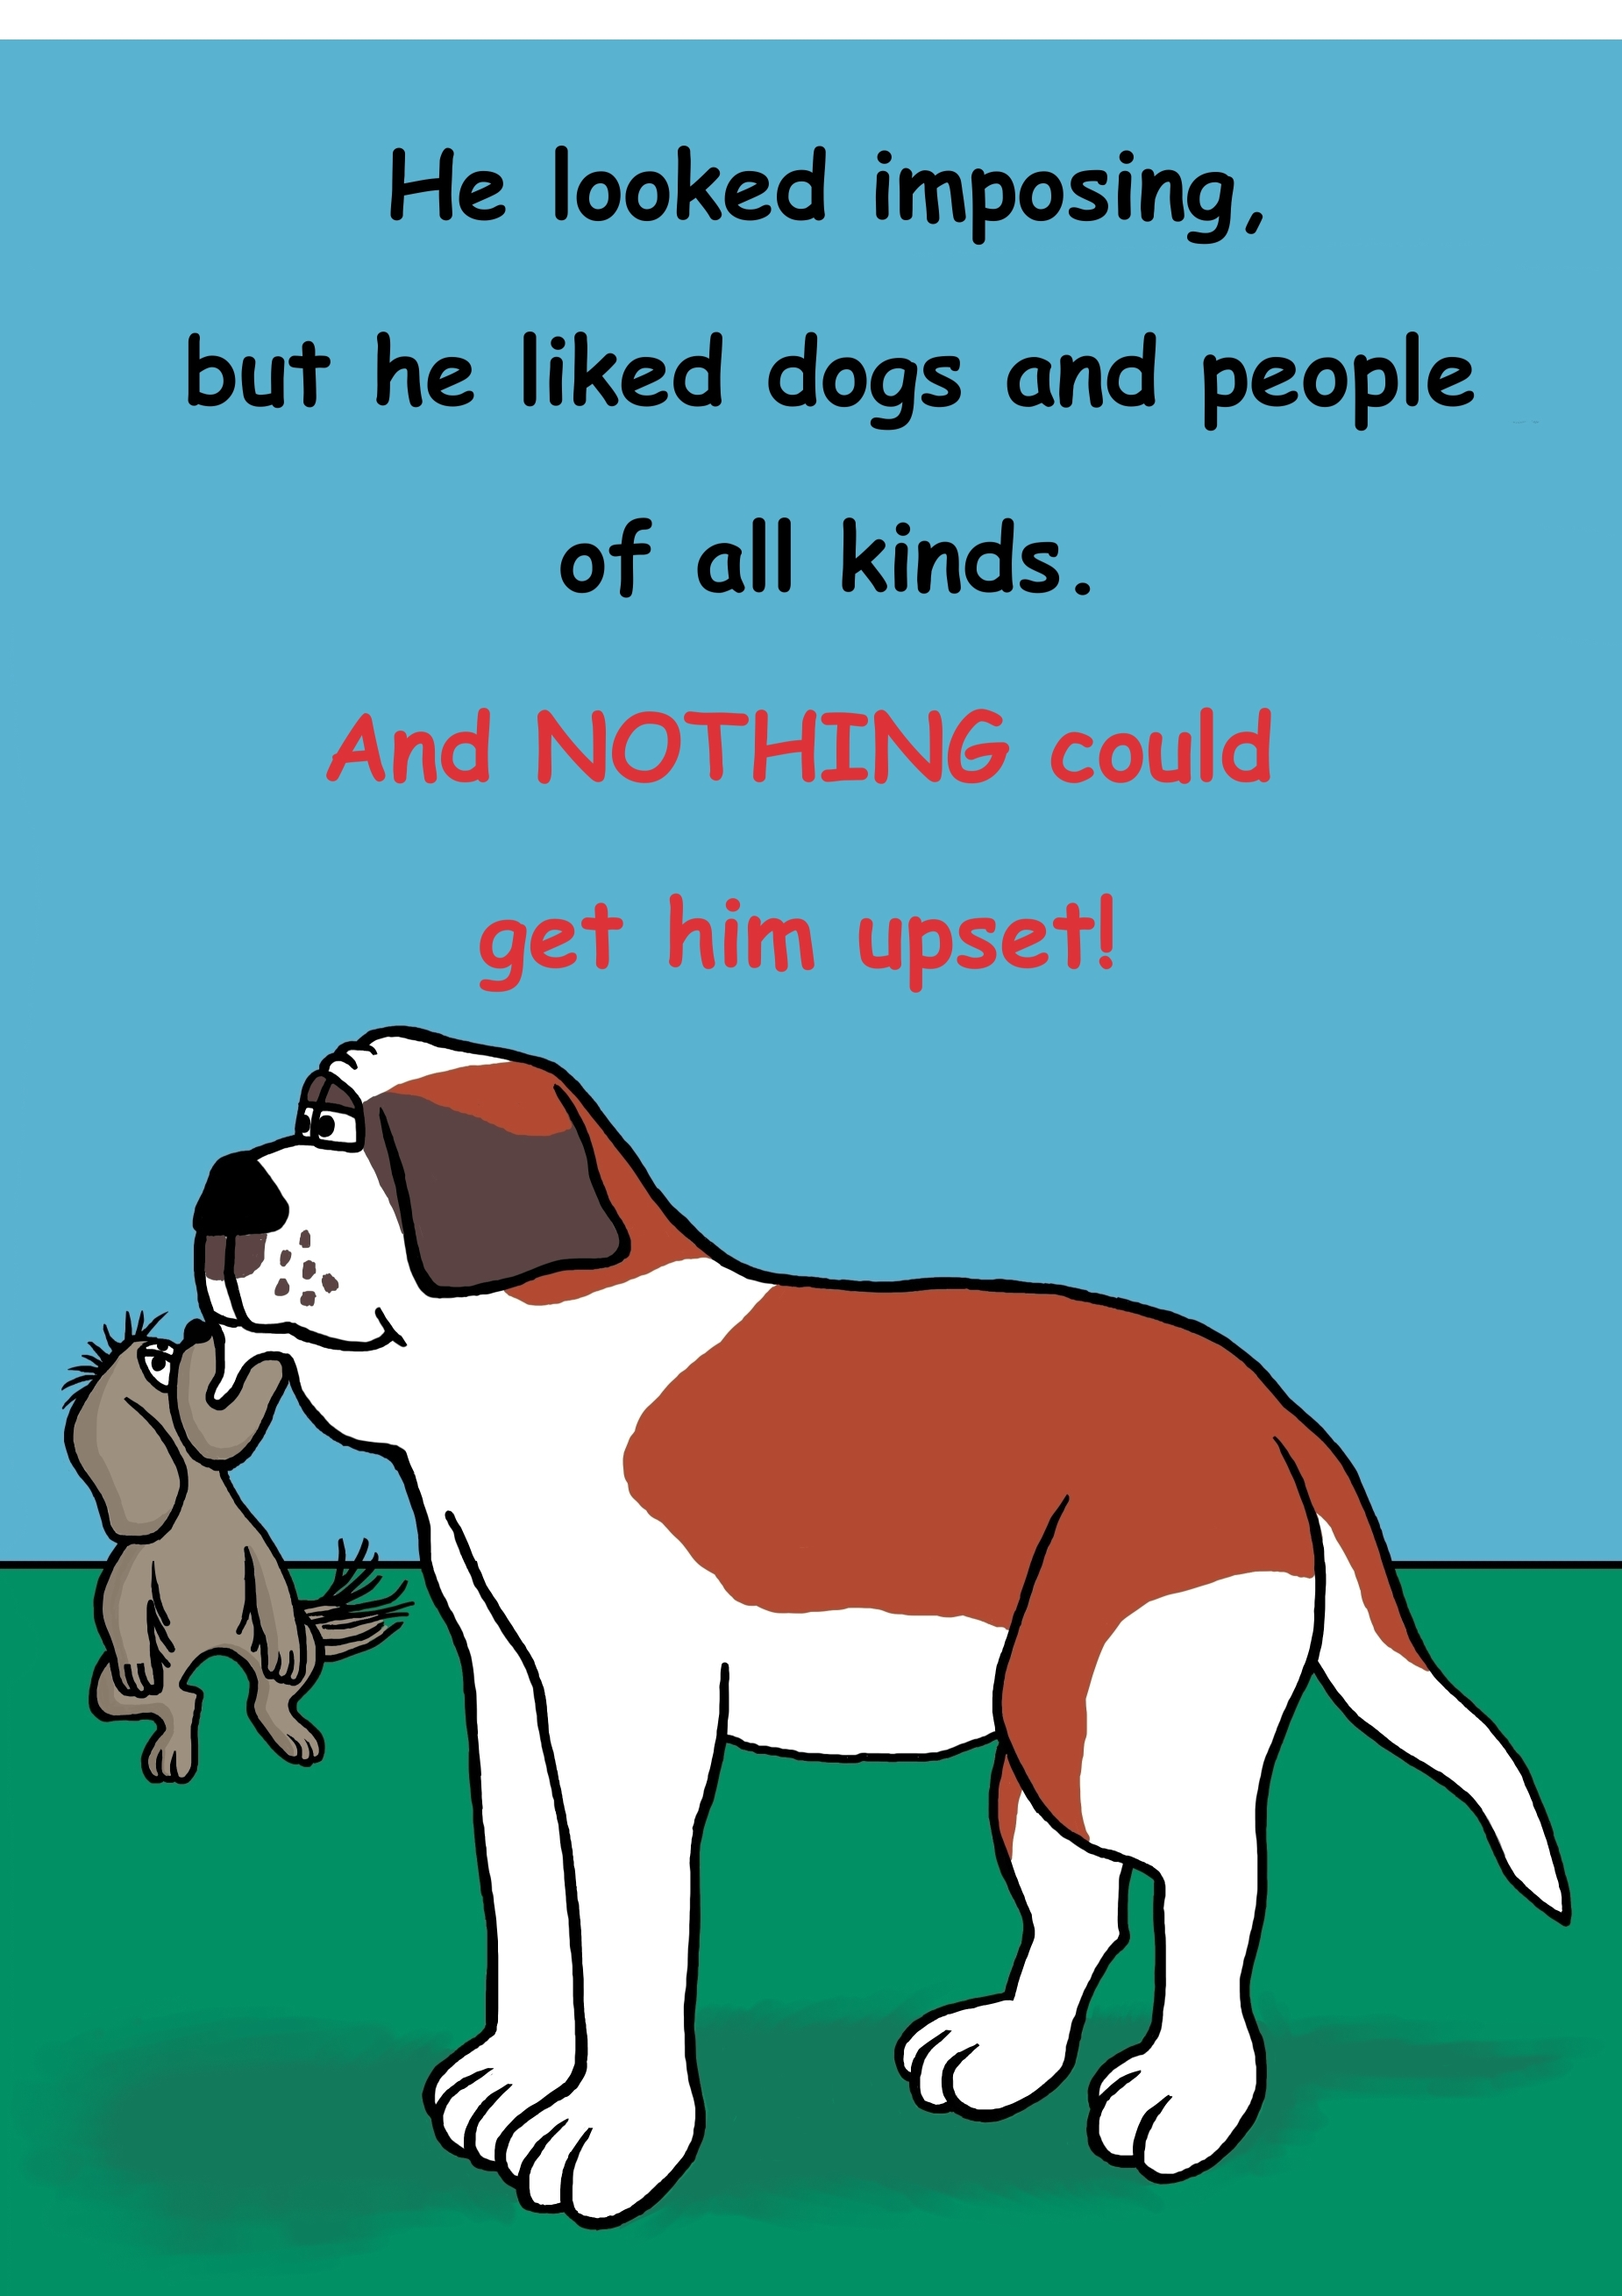 He looked imposing, but he liked dogs and people of all kinds. And, nothing could get him upset!